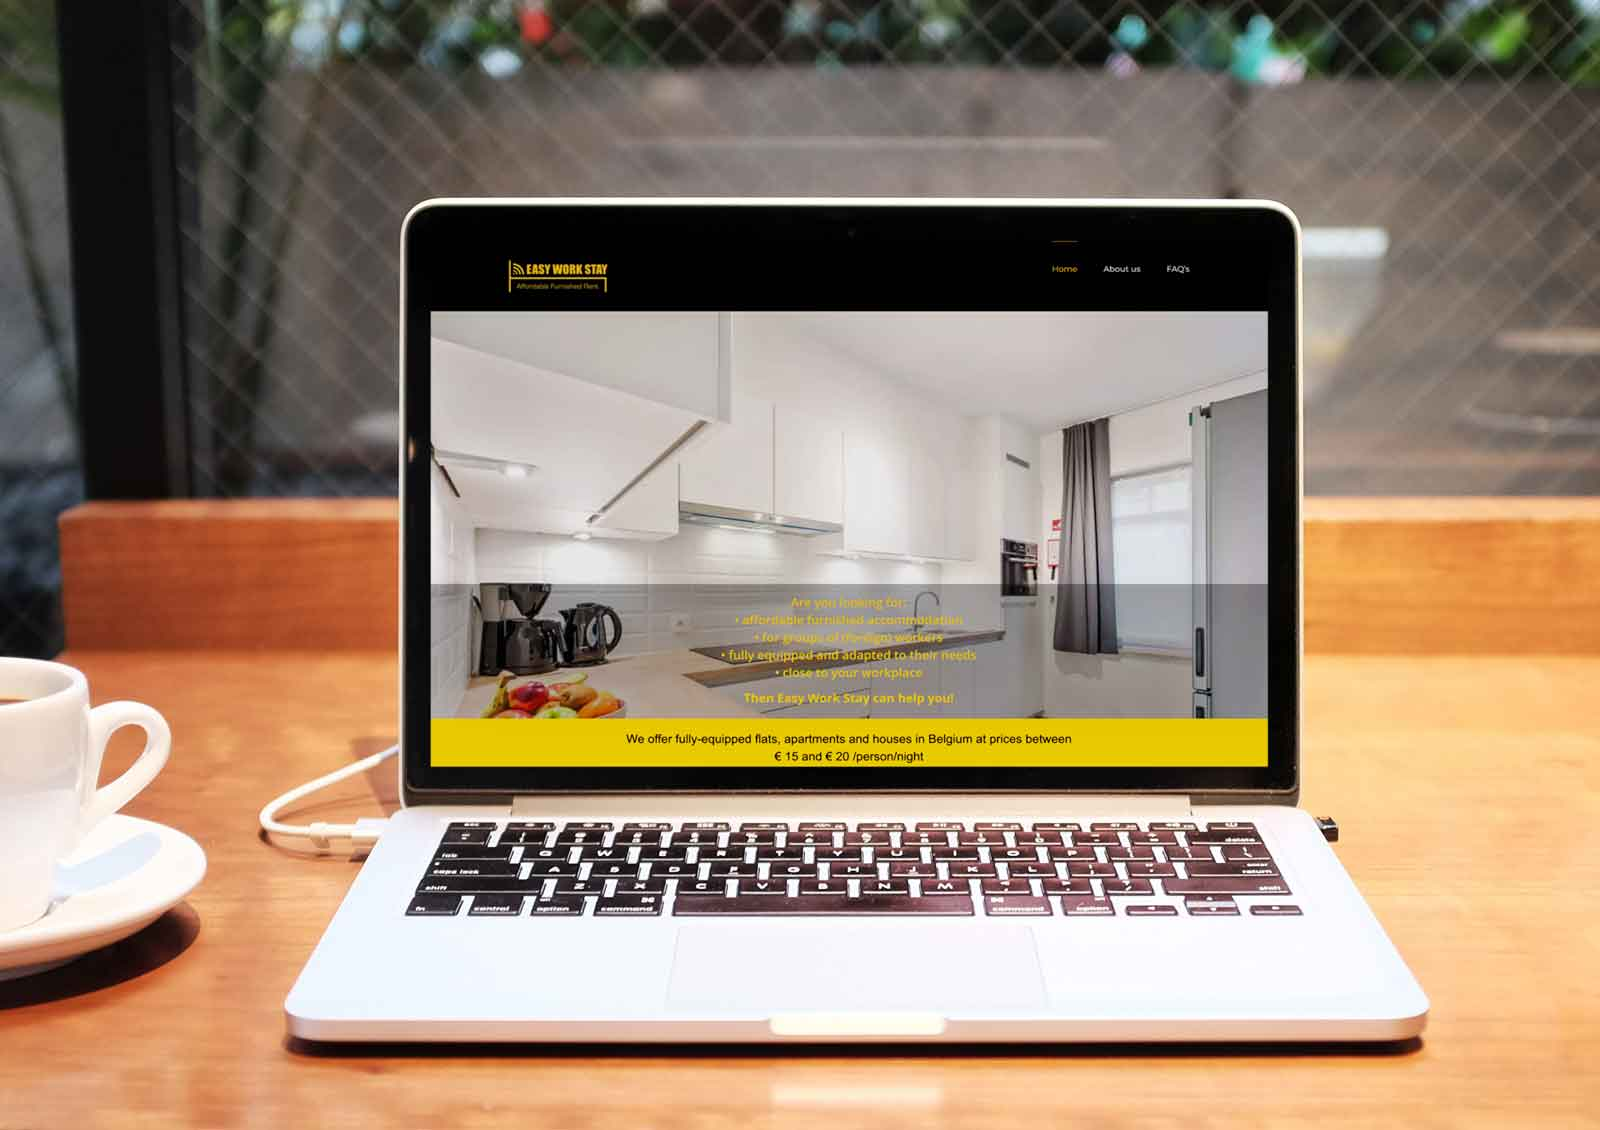 Webdesign-bureau-Torhout-Mioo-Design-website-ontwerp-website-ontwikkeling-Zoekmachine-optimalisatie-SEO-Easy-work-stay